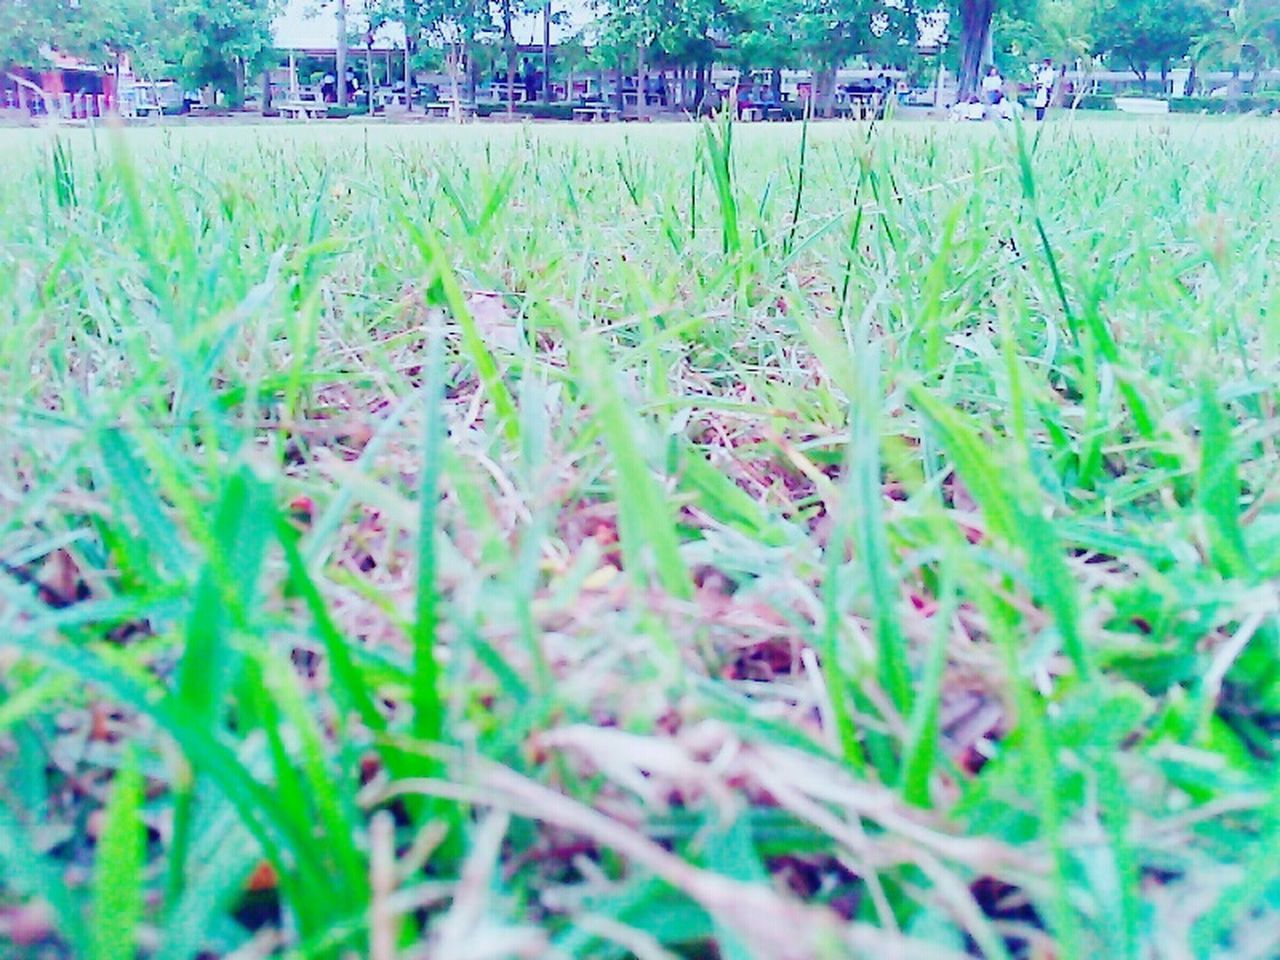 grass, field, growth, nature, selective focus, tranquility, outdoors, beauty in nature, no people, day, freshness, close-up